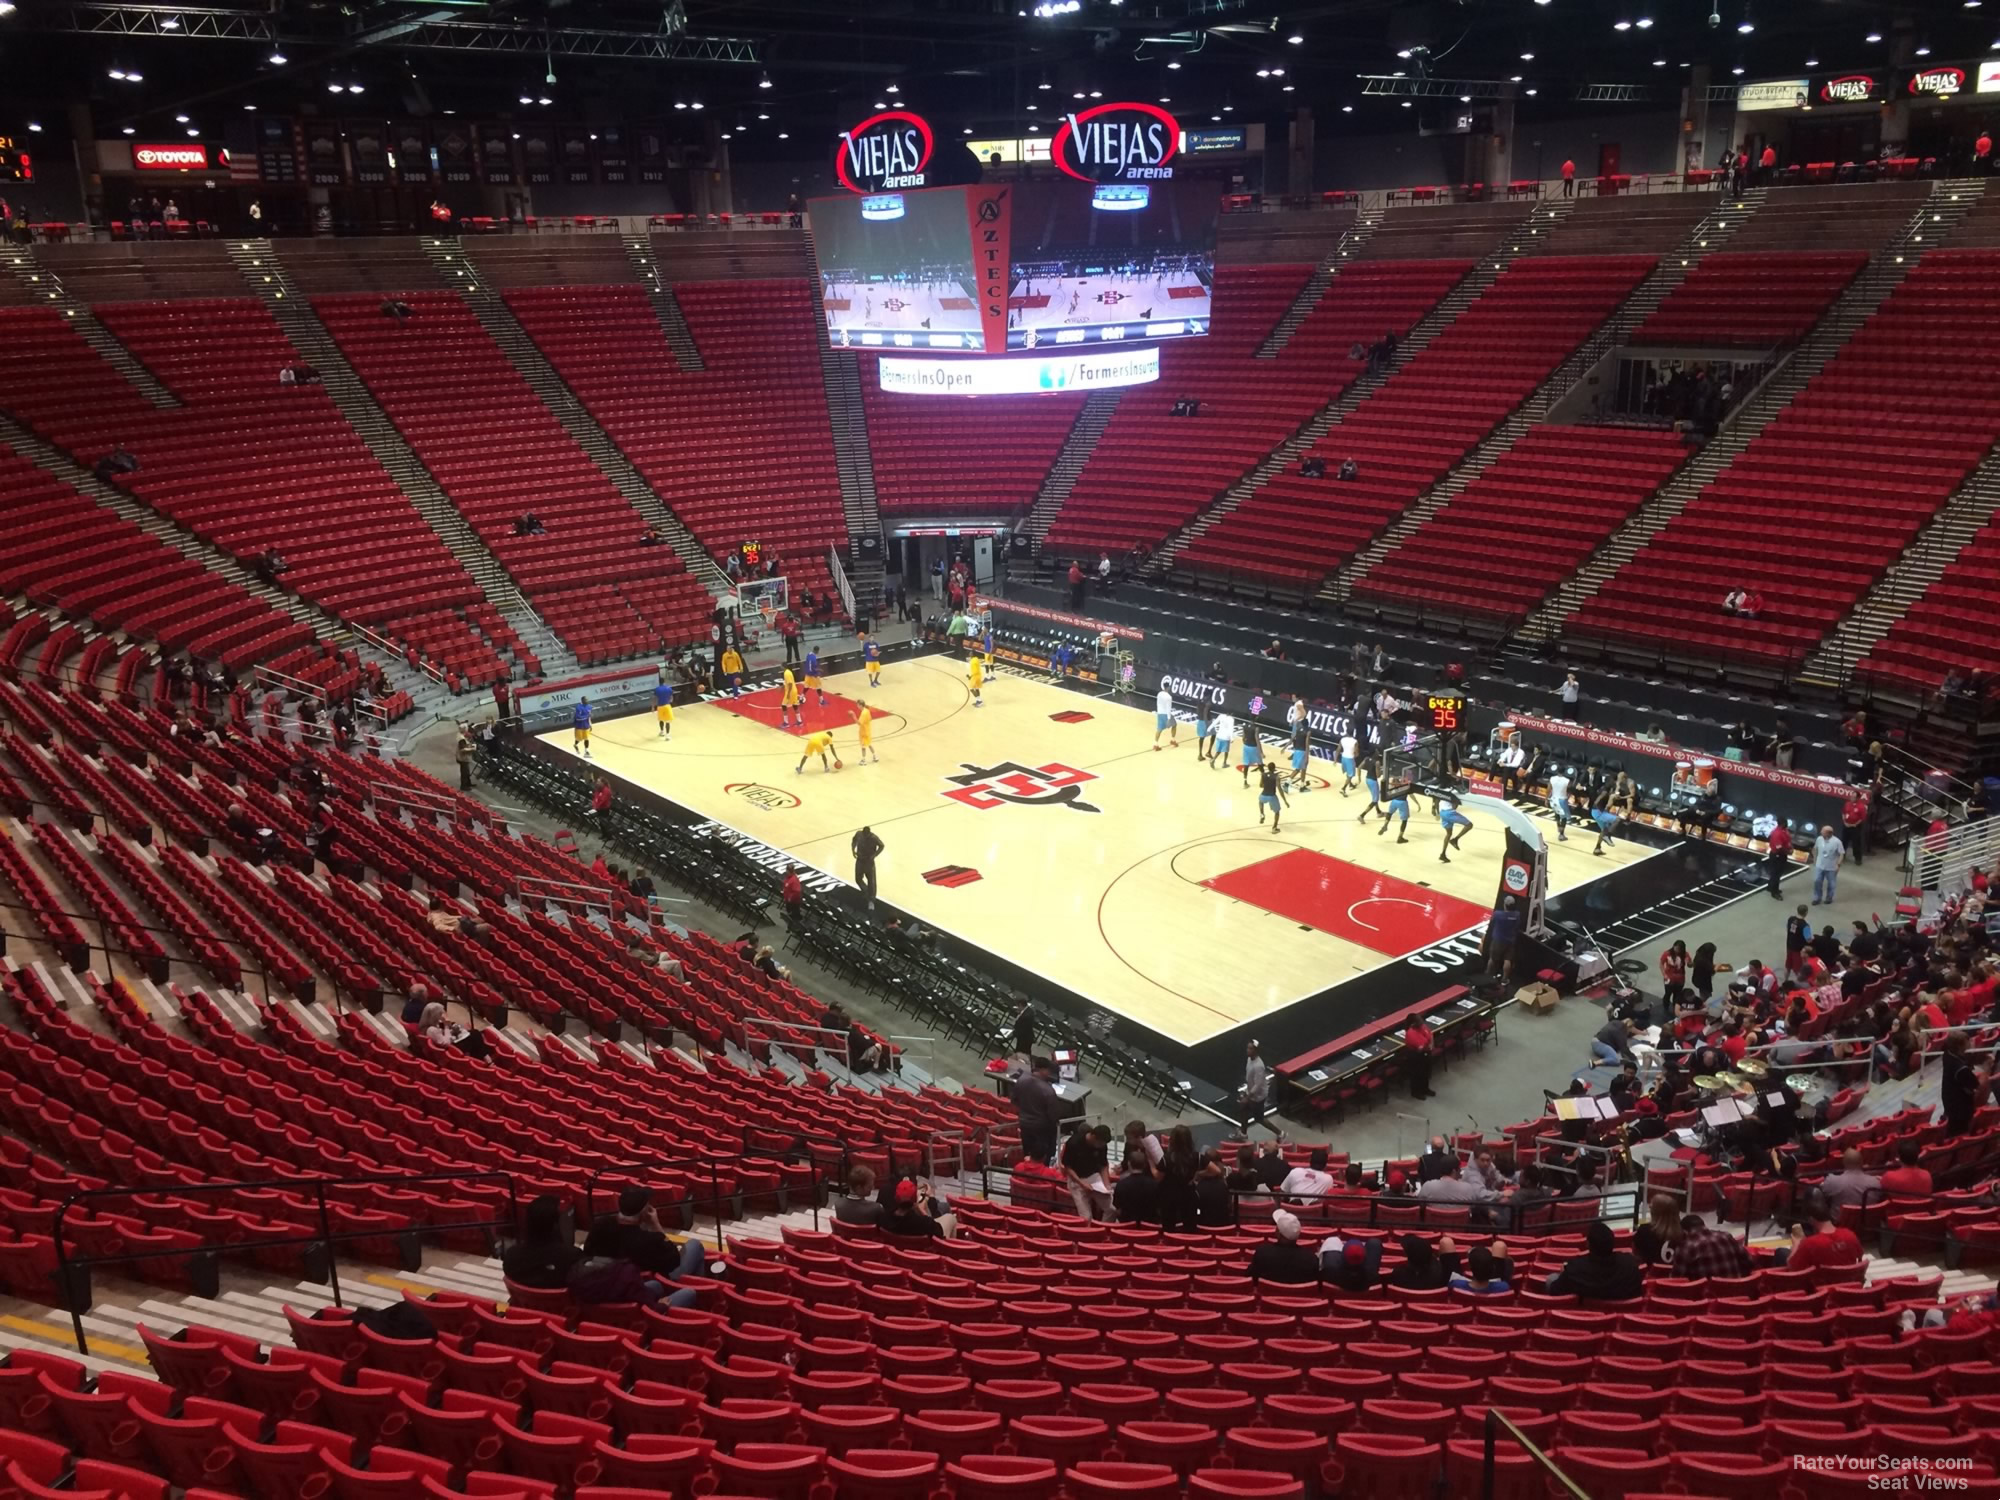 Seat View for Viejas Arena Section J, Row 30